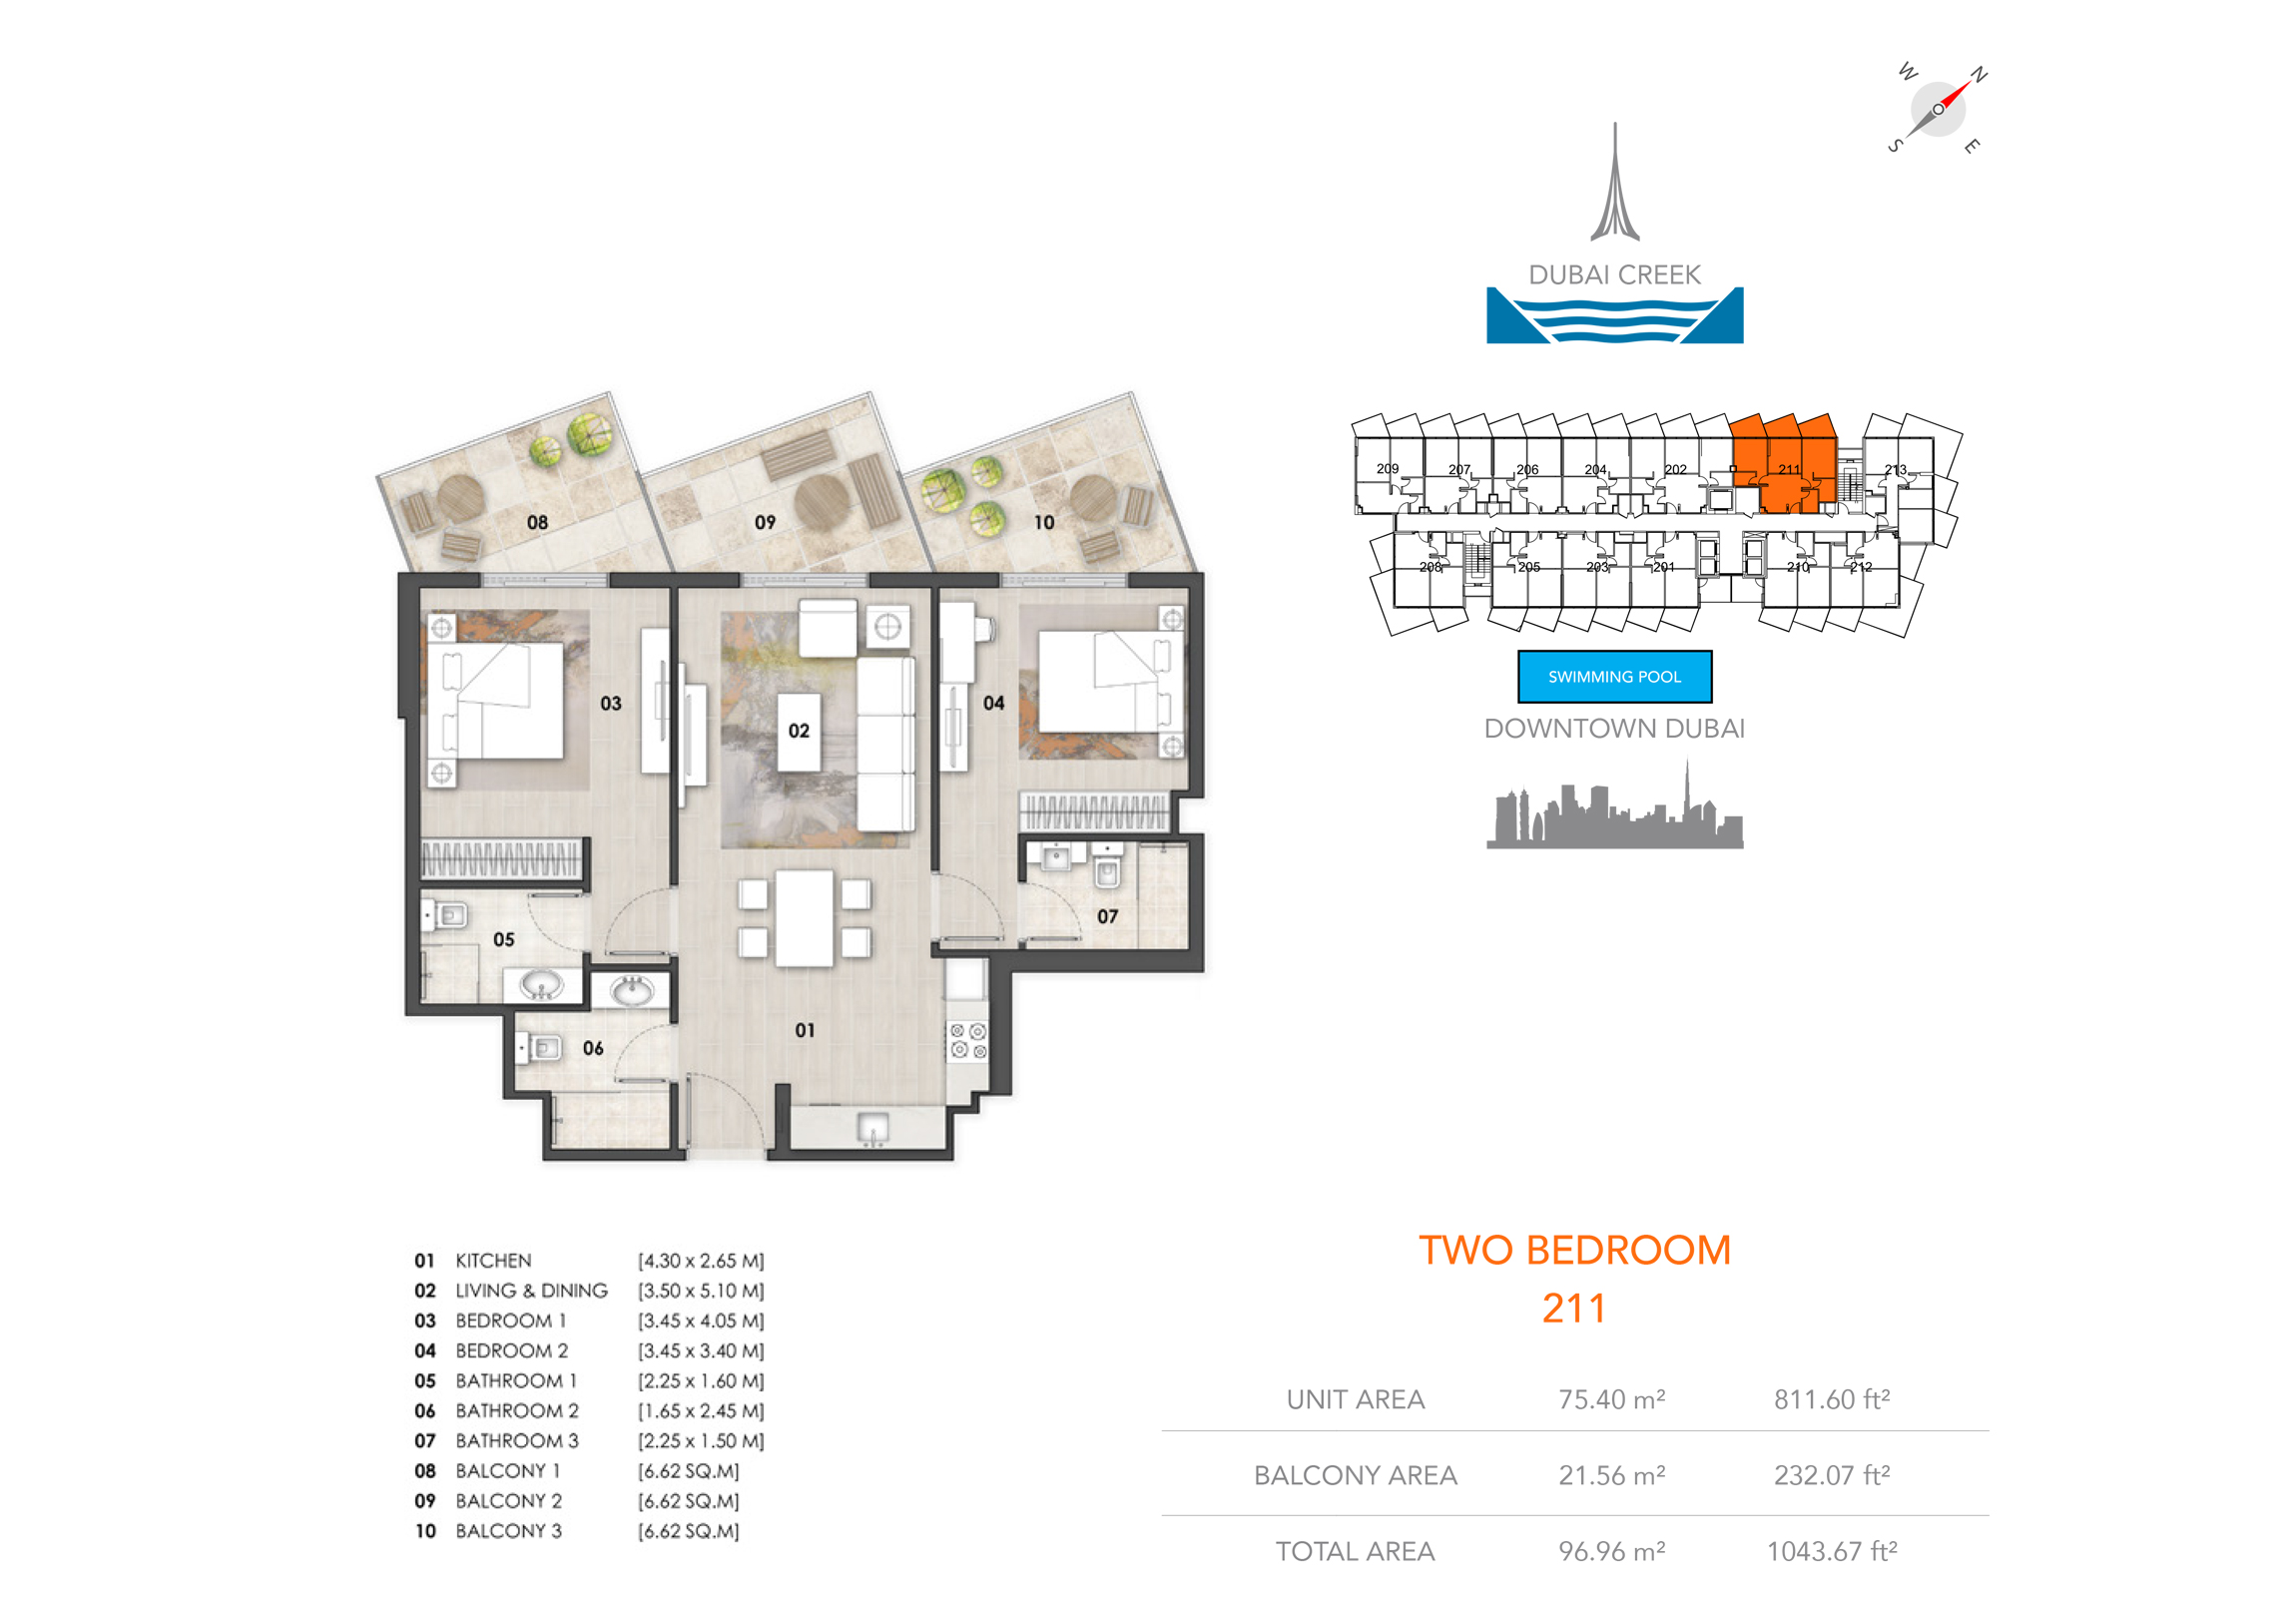 2 Bedroom 211, Size 1043.67 sq.ft